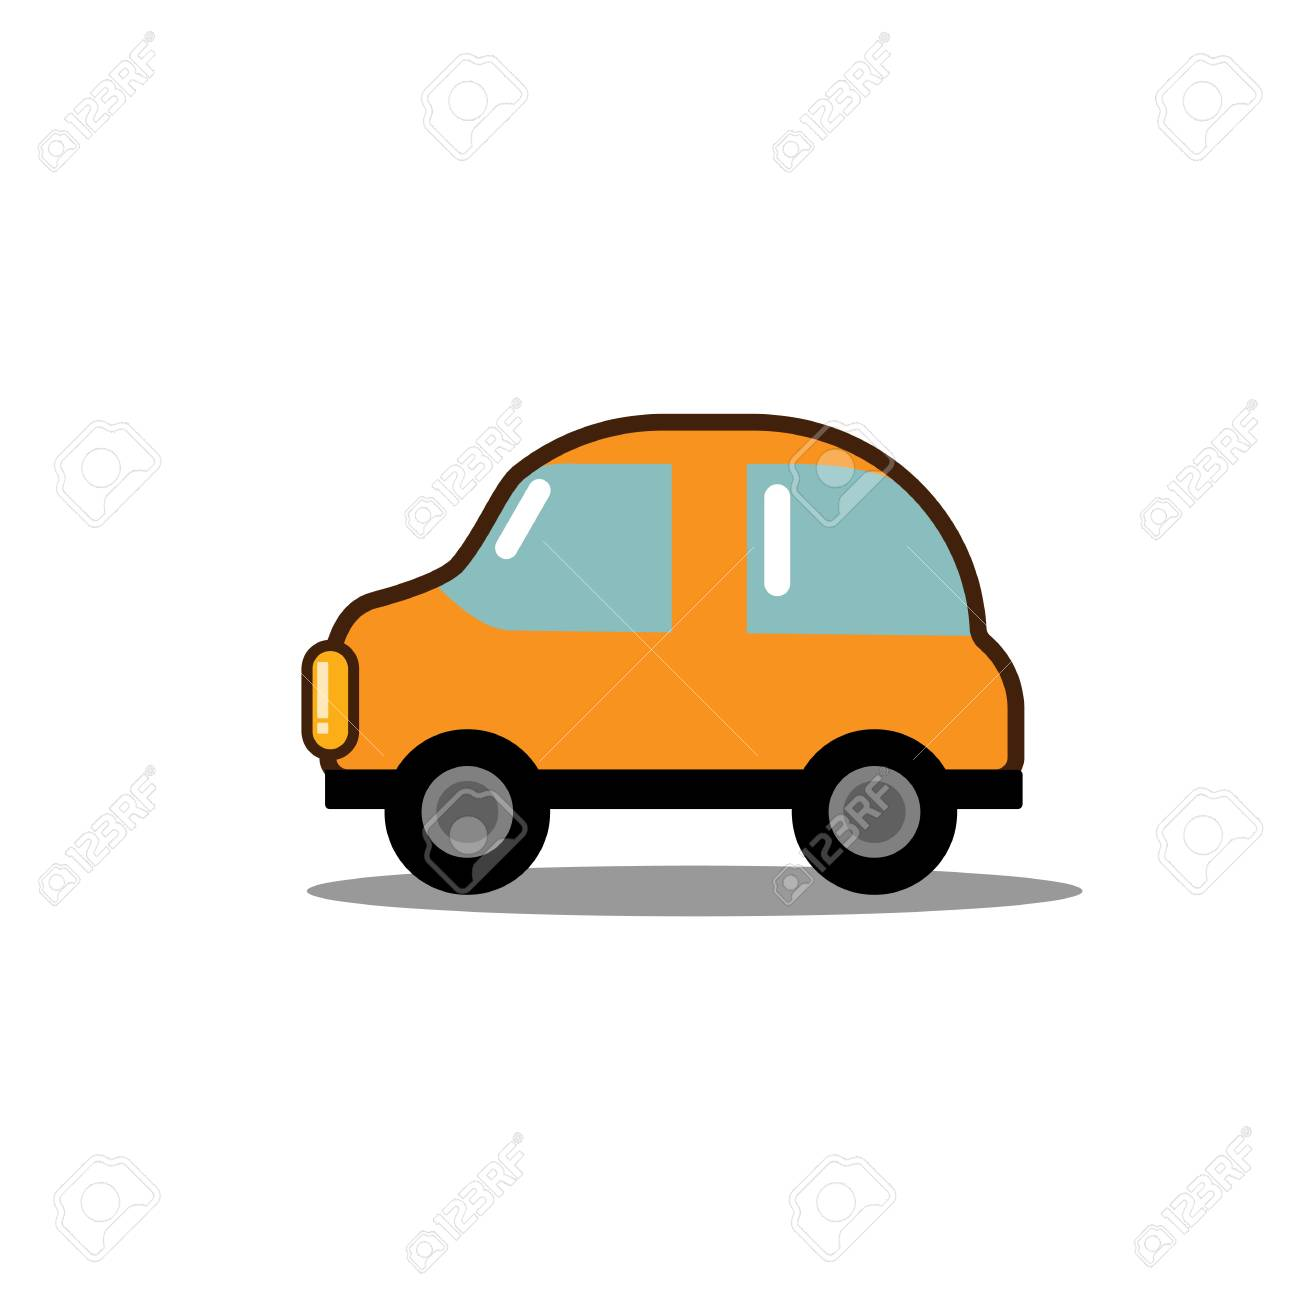 Car Flat Icon Bright Cartoon Vehicle Concept For Poster Banner